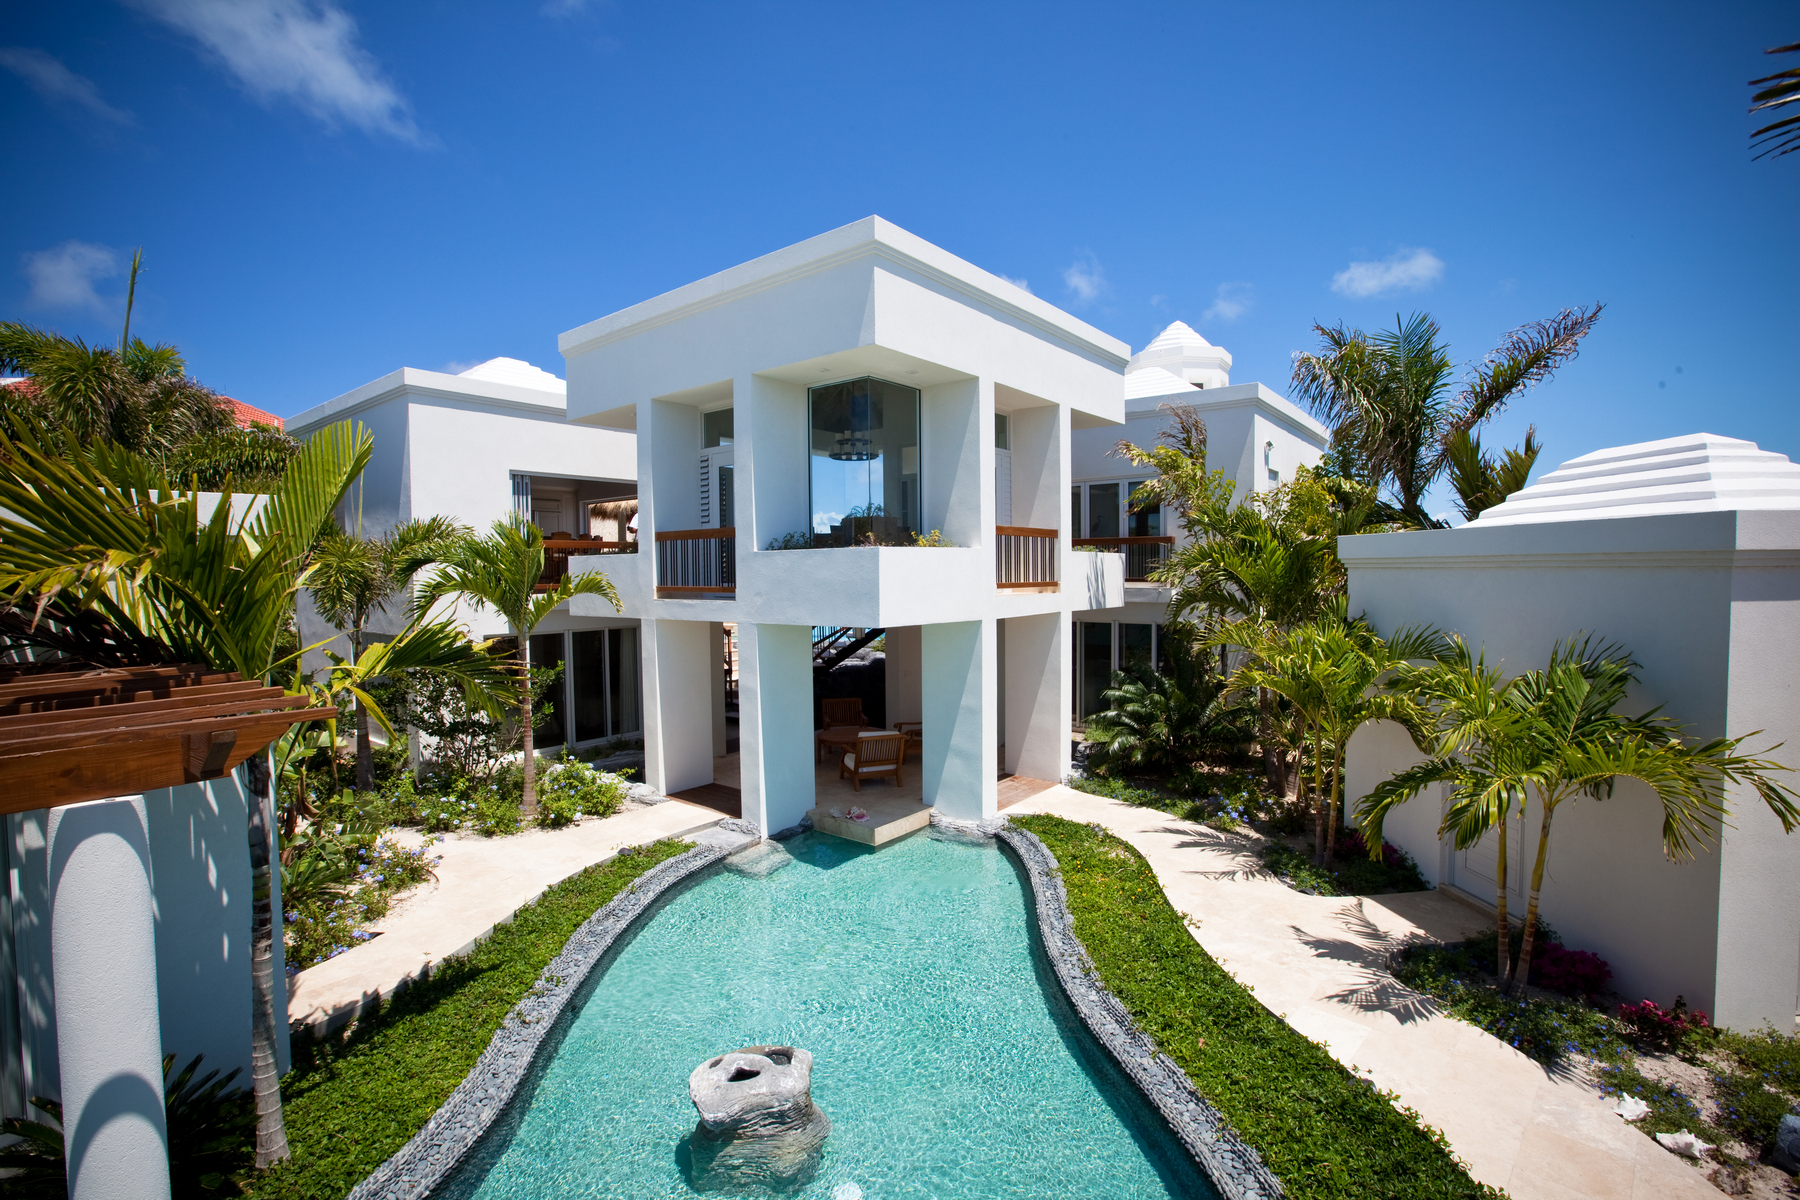 Tek Ailelik Ev için Satış at Turtle Breeze Villa Beachfront Turtle Cove, Providenciales, TC Turks Ve Caicos Adalari